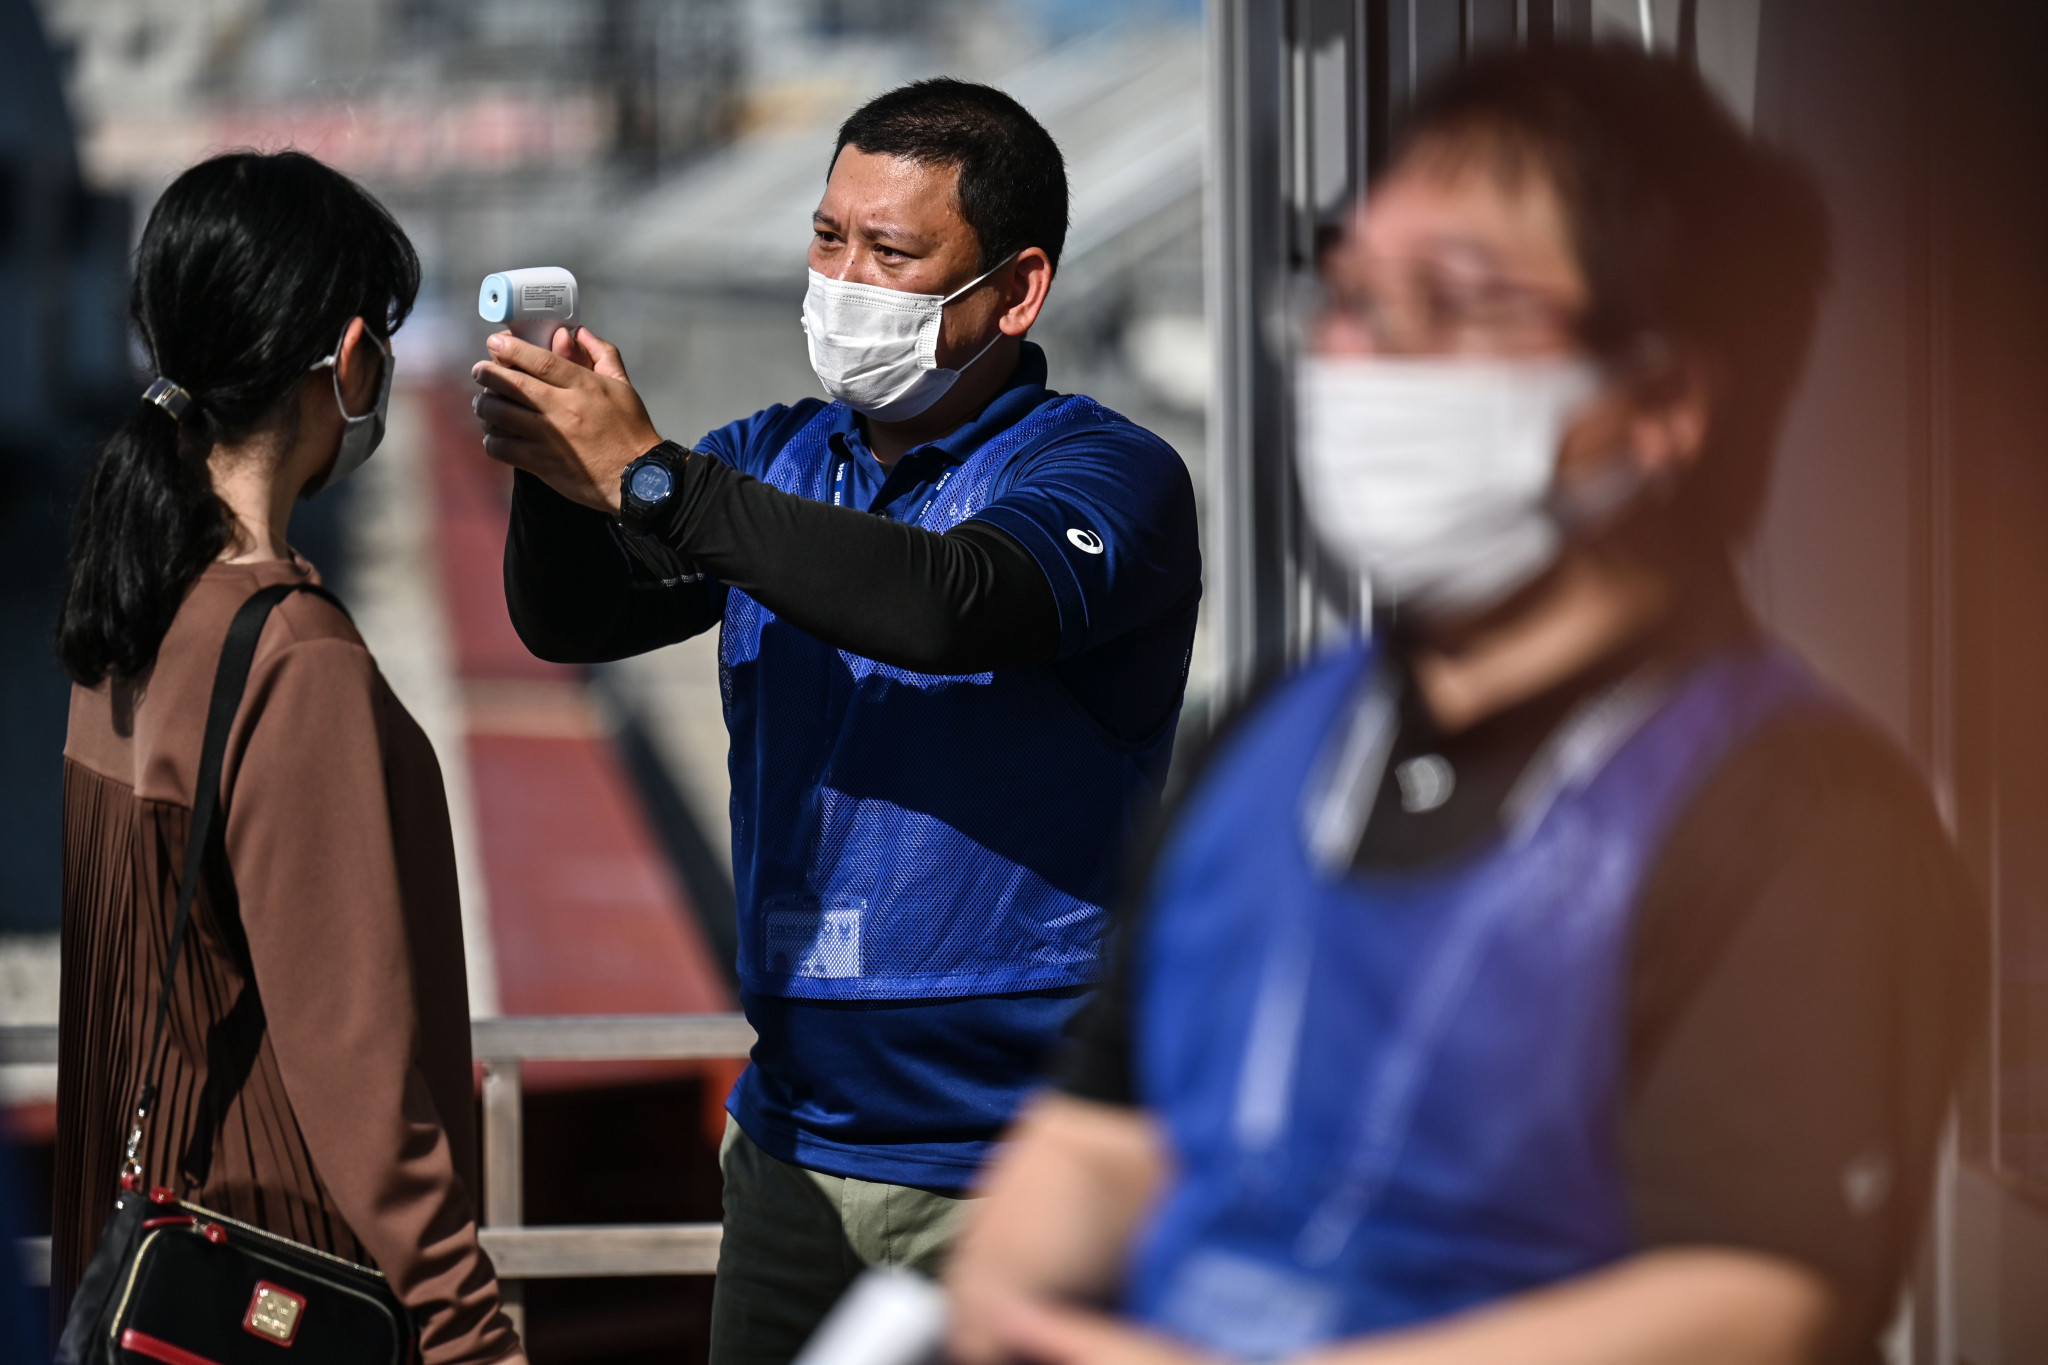 Japan to launch health monitoring centre to track visitors during Tokyo 2020